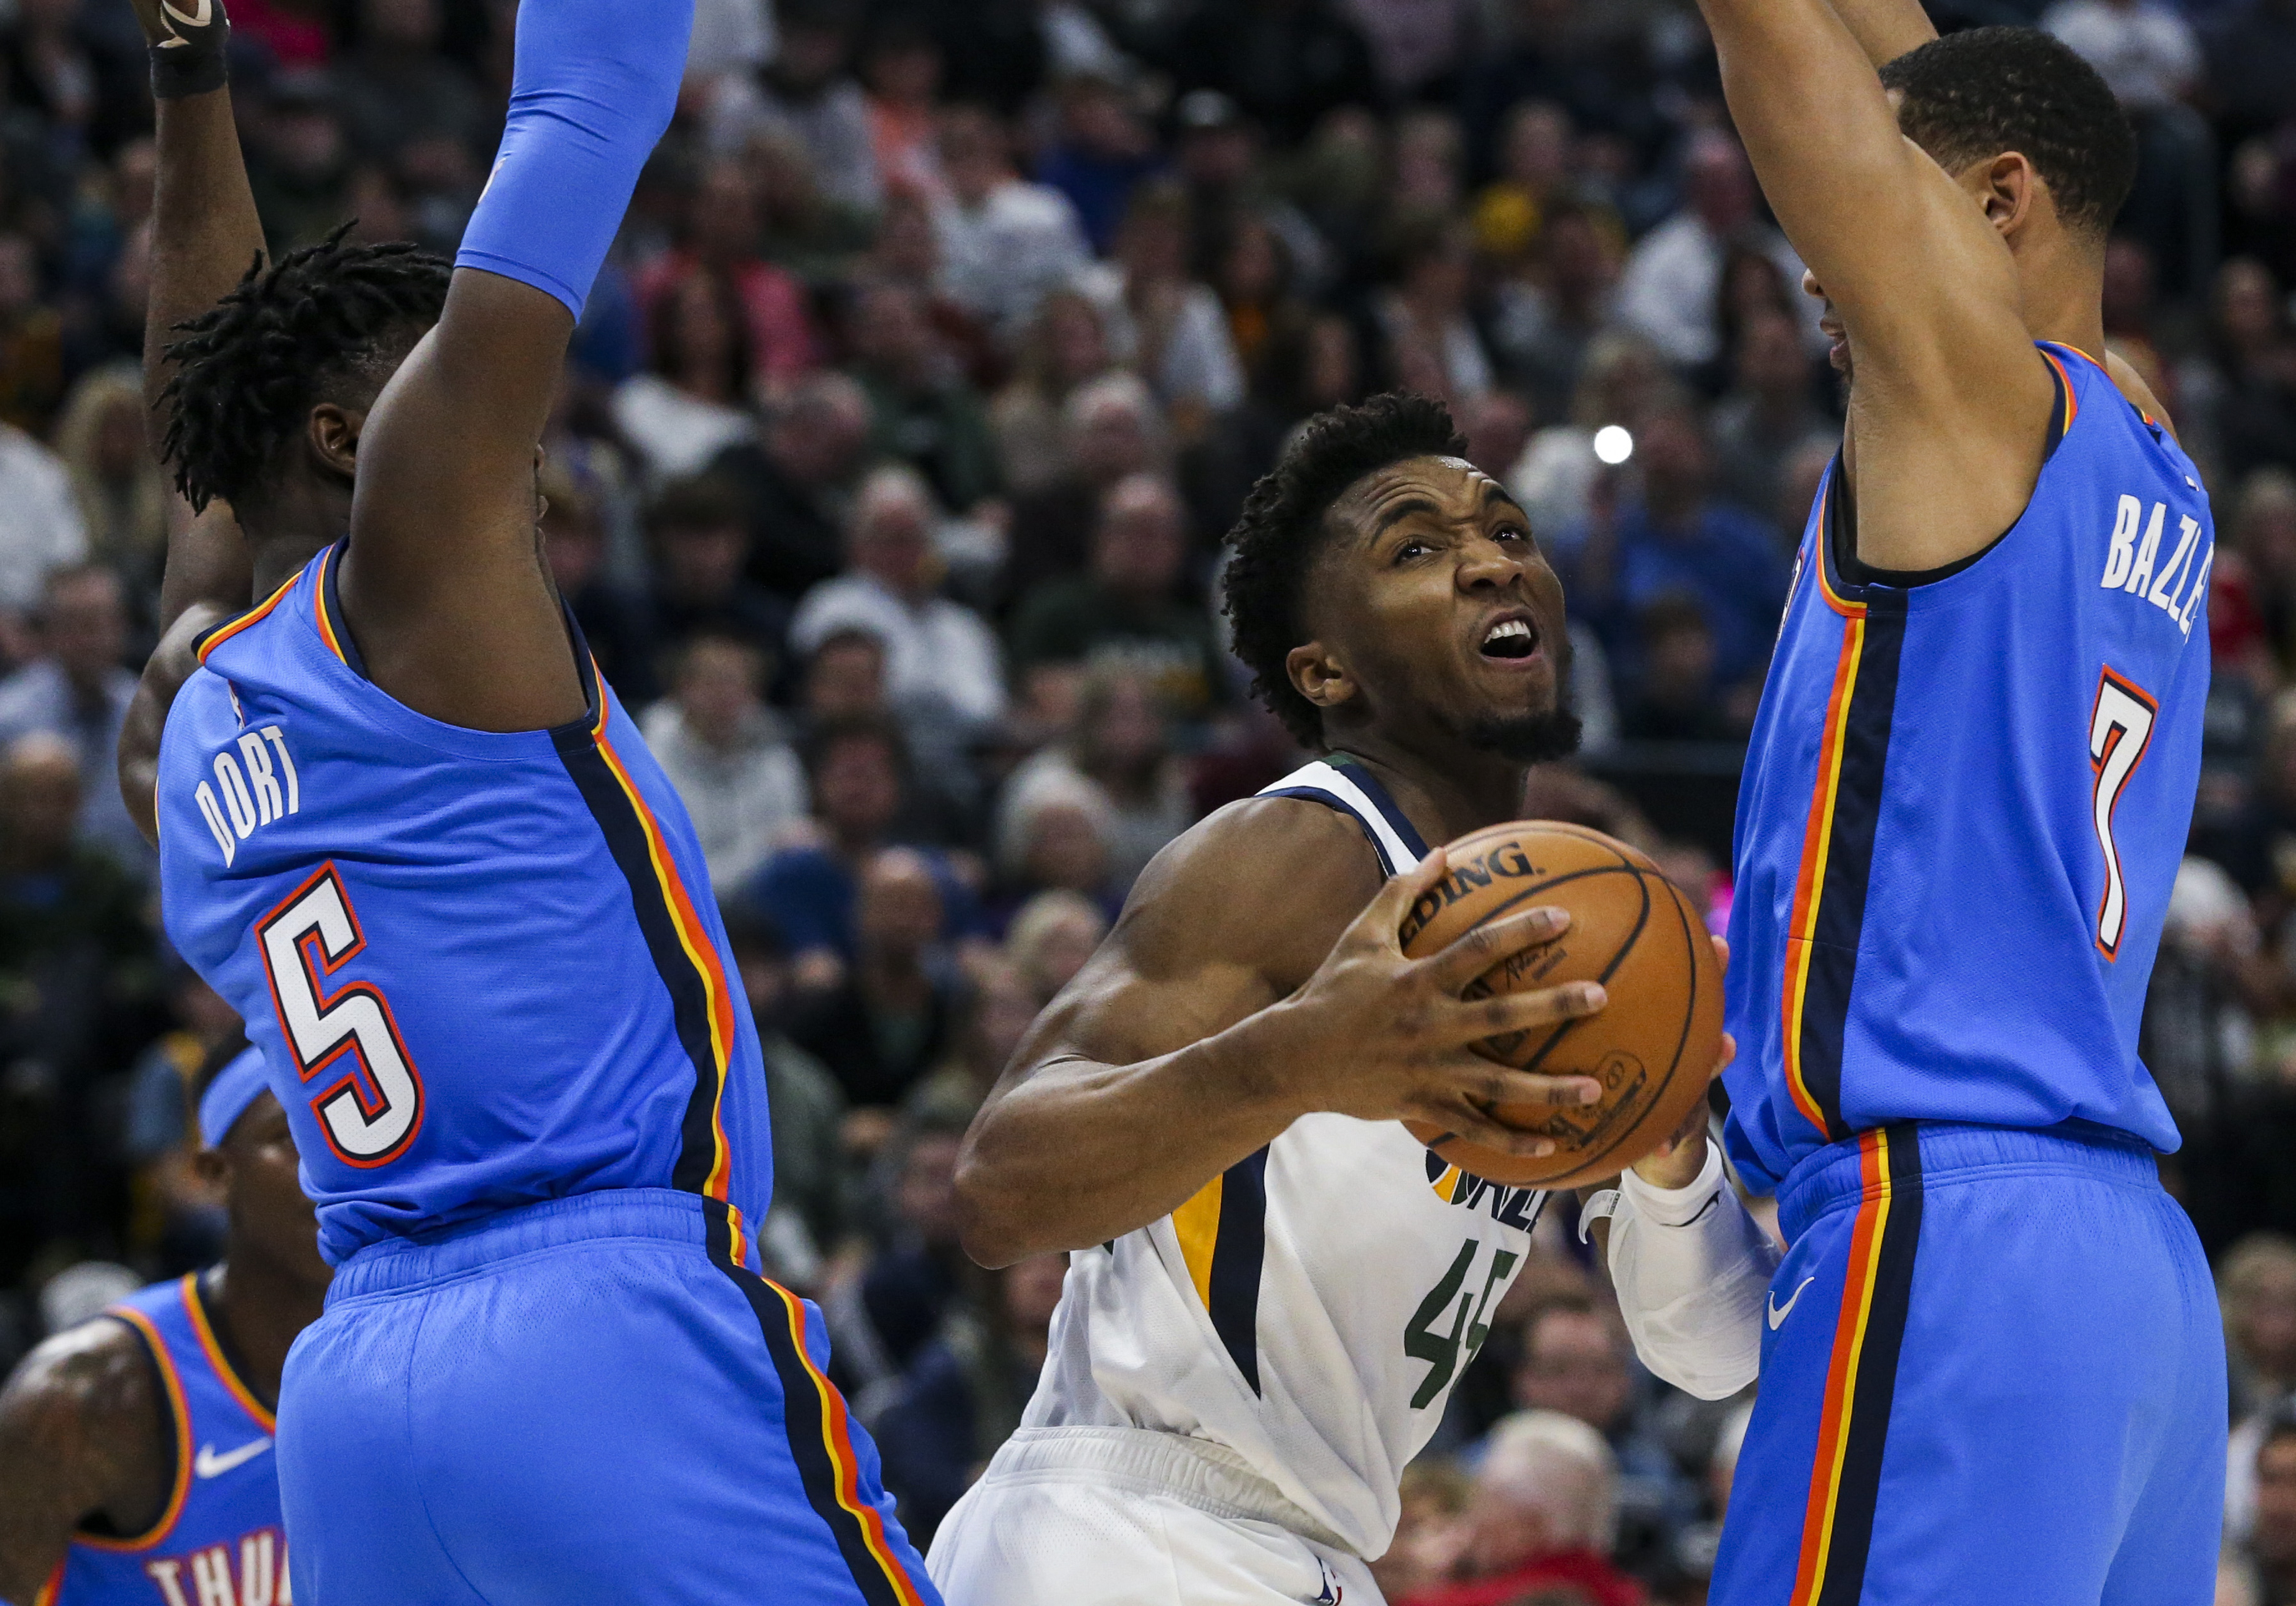 Utah Jazz guard Donovan Mitchell (45) is boxed in by Oklahoma City Thunder guard Luguentz Dort (5) and forward Darius Bazley (7) during the first half of a NBA basketball game at Vivint Smart Home Arena in Salt Lake City on Monday, Dec. 9, 2019.